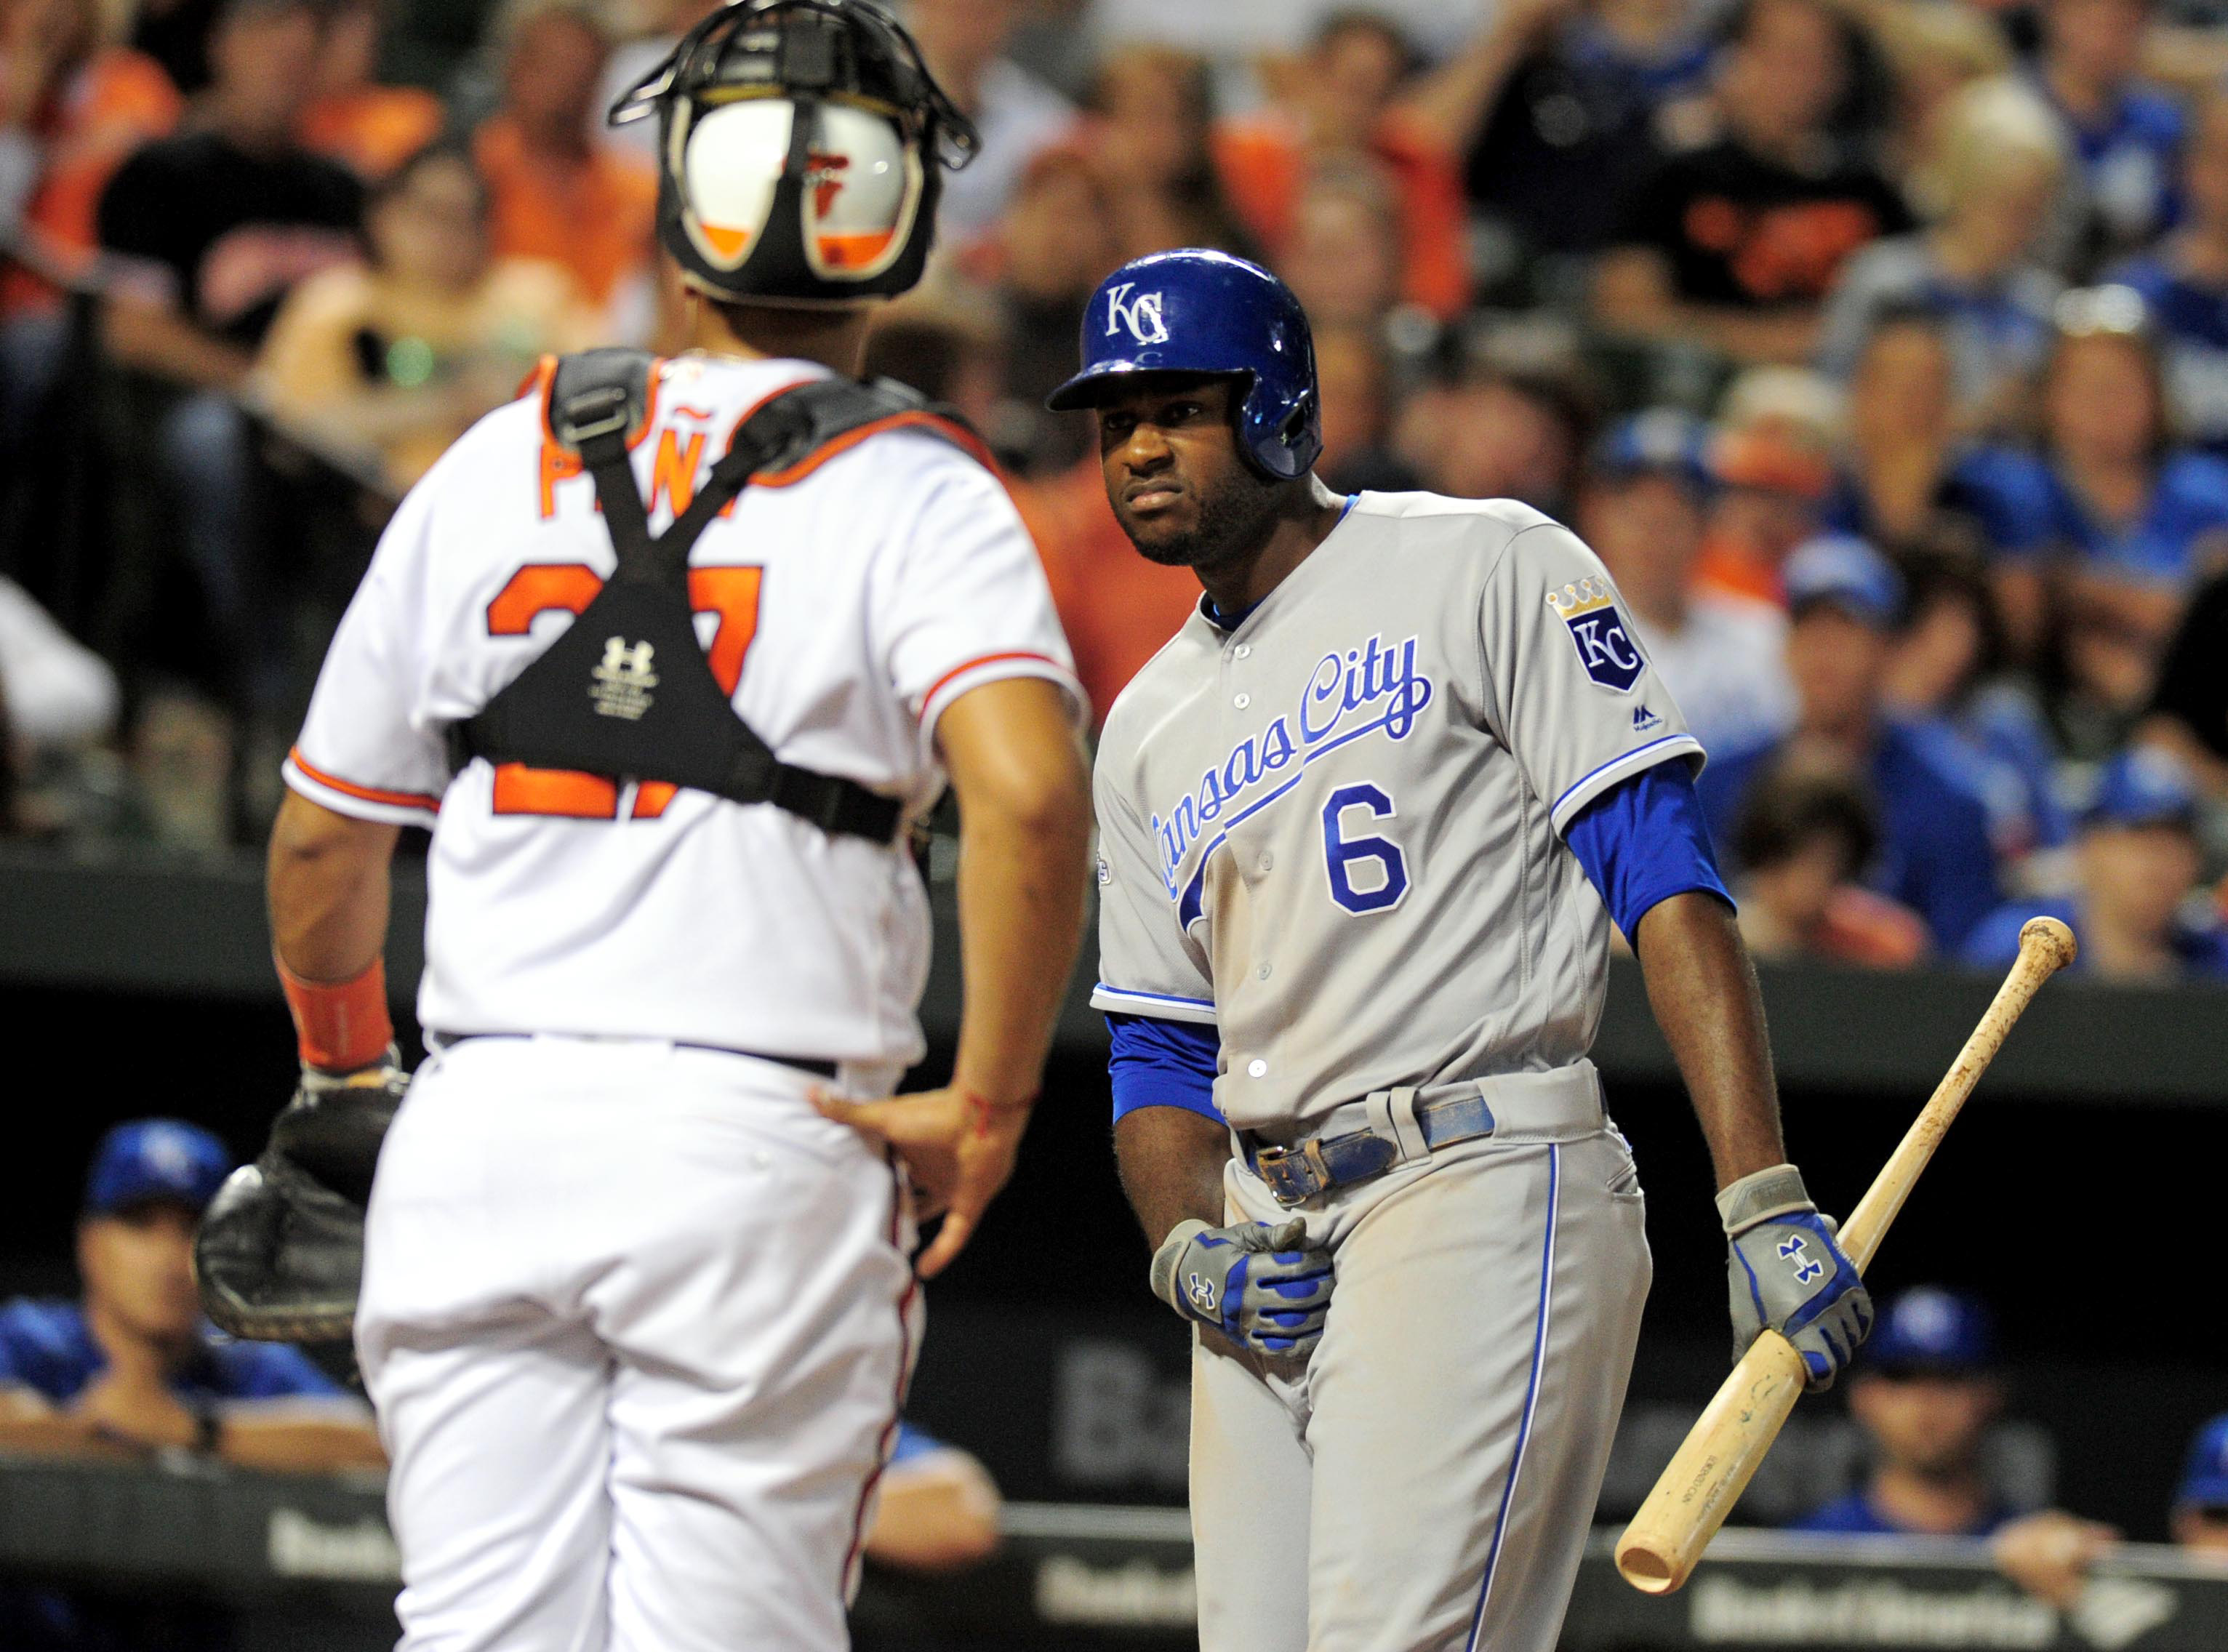 Nate Karns whiffs 12 as Royals outlast Orioles